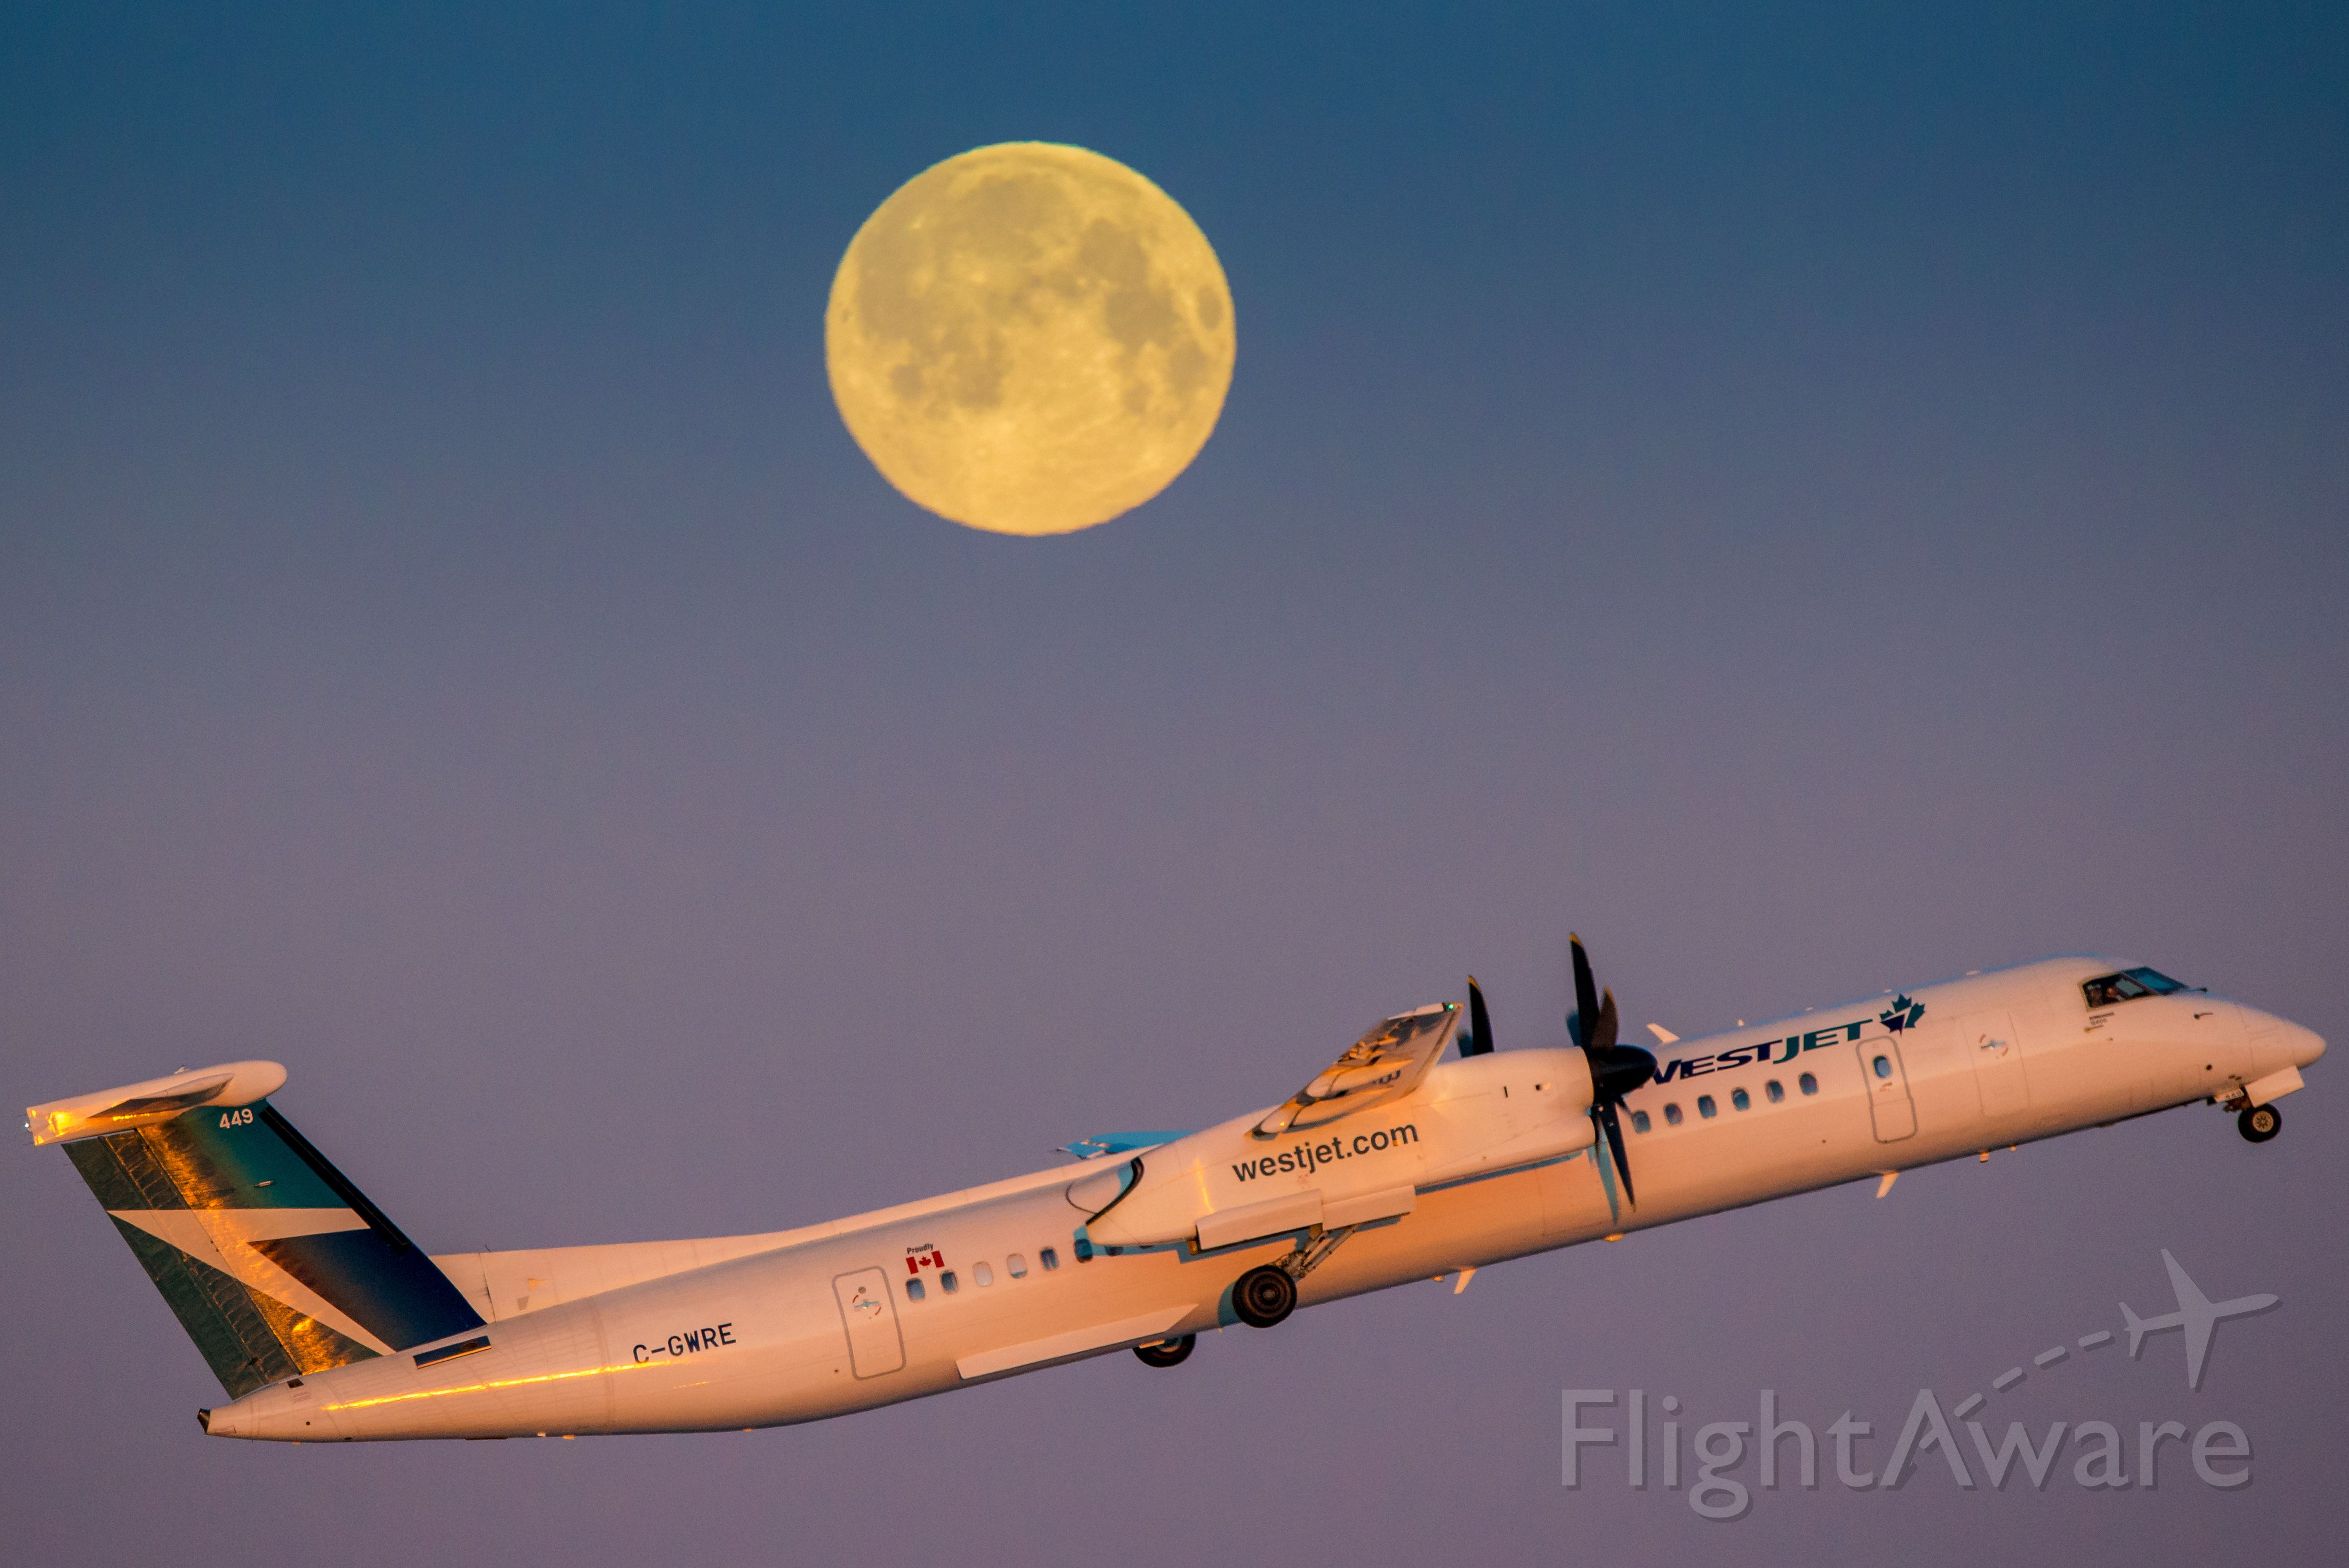 de Havilland Dash 8-400 (C-GWRE) - Encore 3147 launches off 35R under a brilliant full moon. br /br /Edit: Thank you for all the wonderful and nice comments and five stars everyone, very much appreciated!!! Glad you enjoyed!